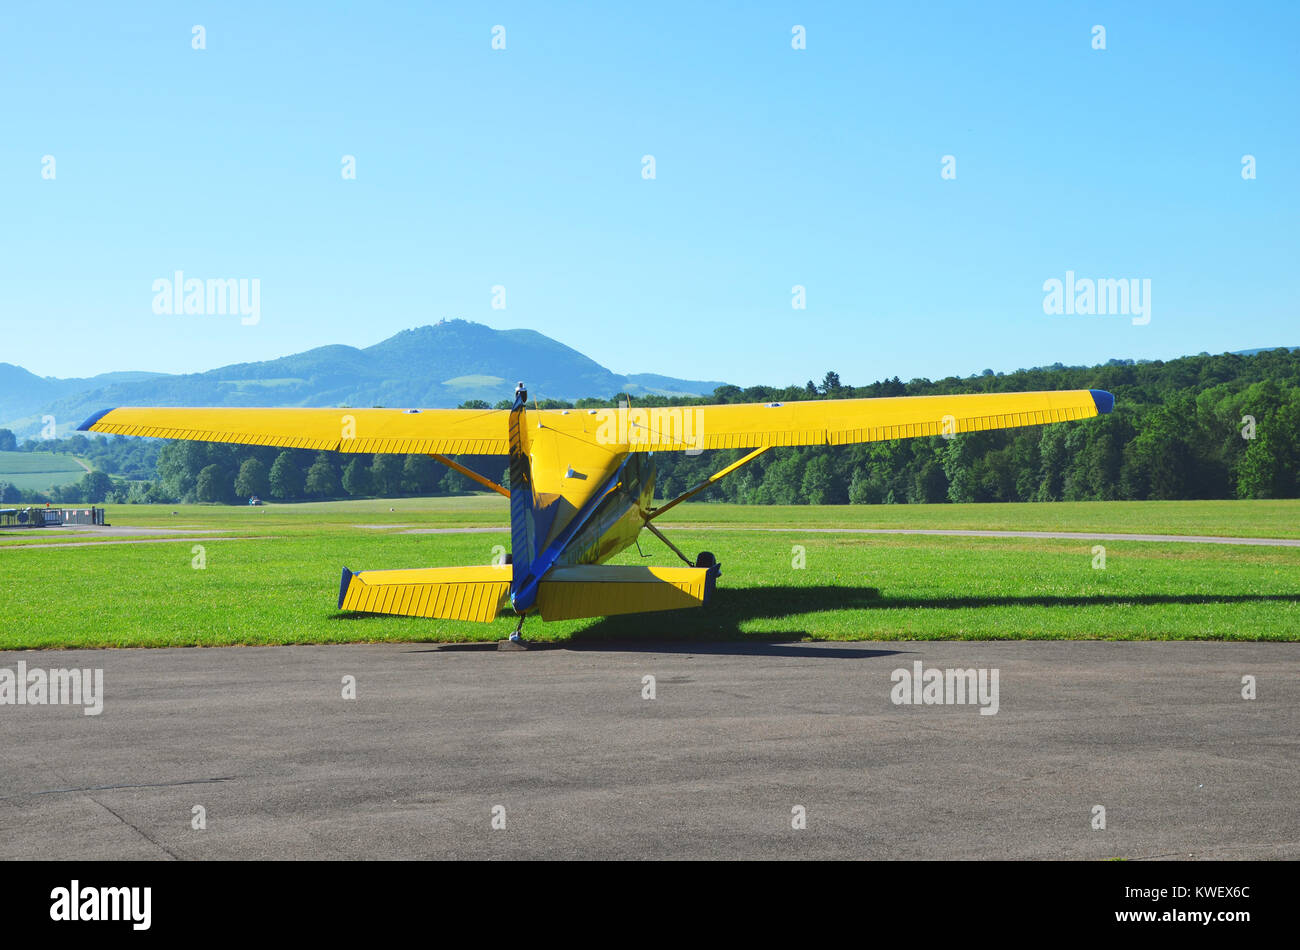 A small yellow plane ready for takeoff, seen at Hahnweide, Stuttgart, south Germany, June 2017 - Stock Image